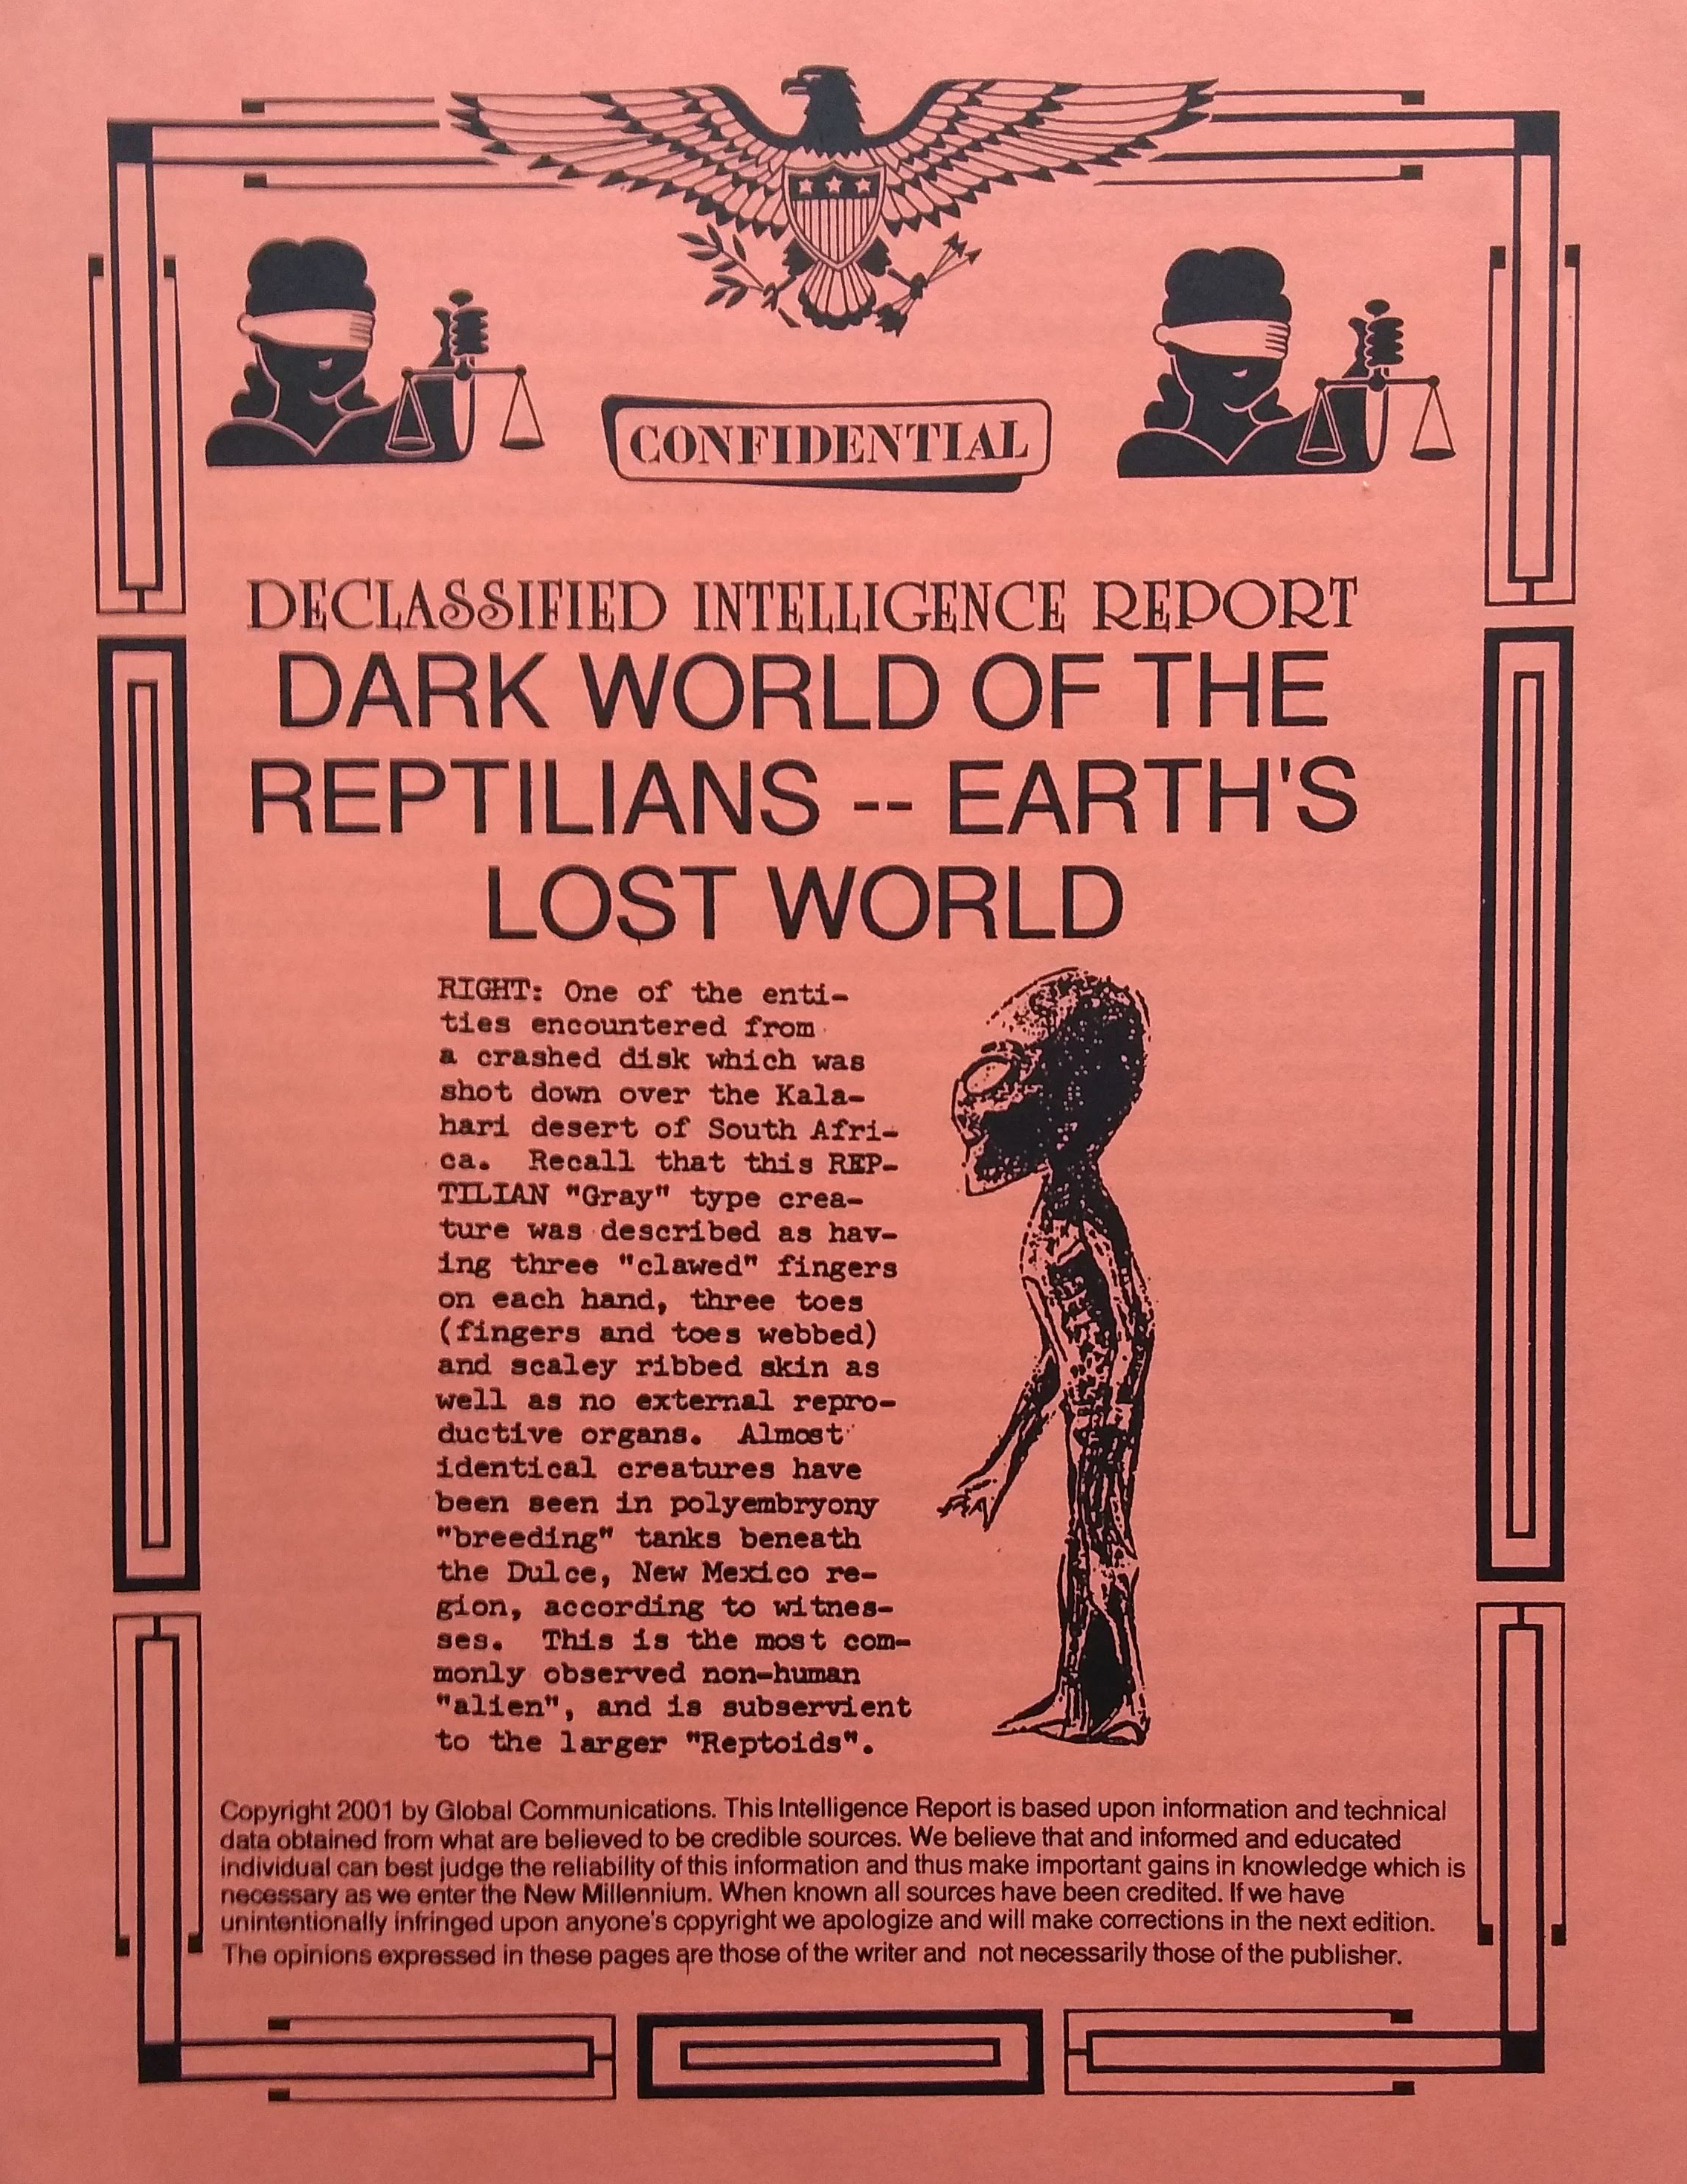 Dark world of the reptilians